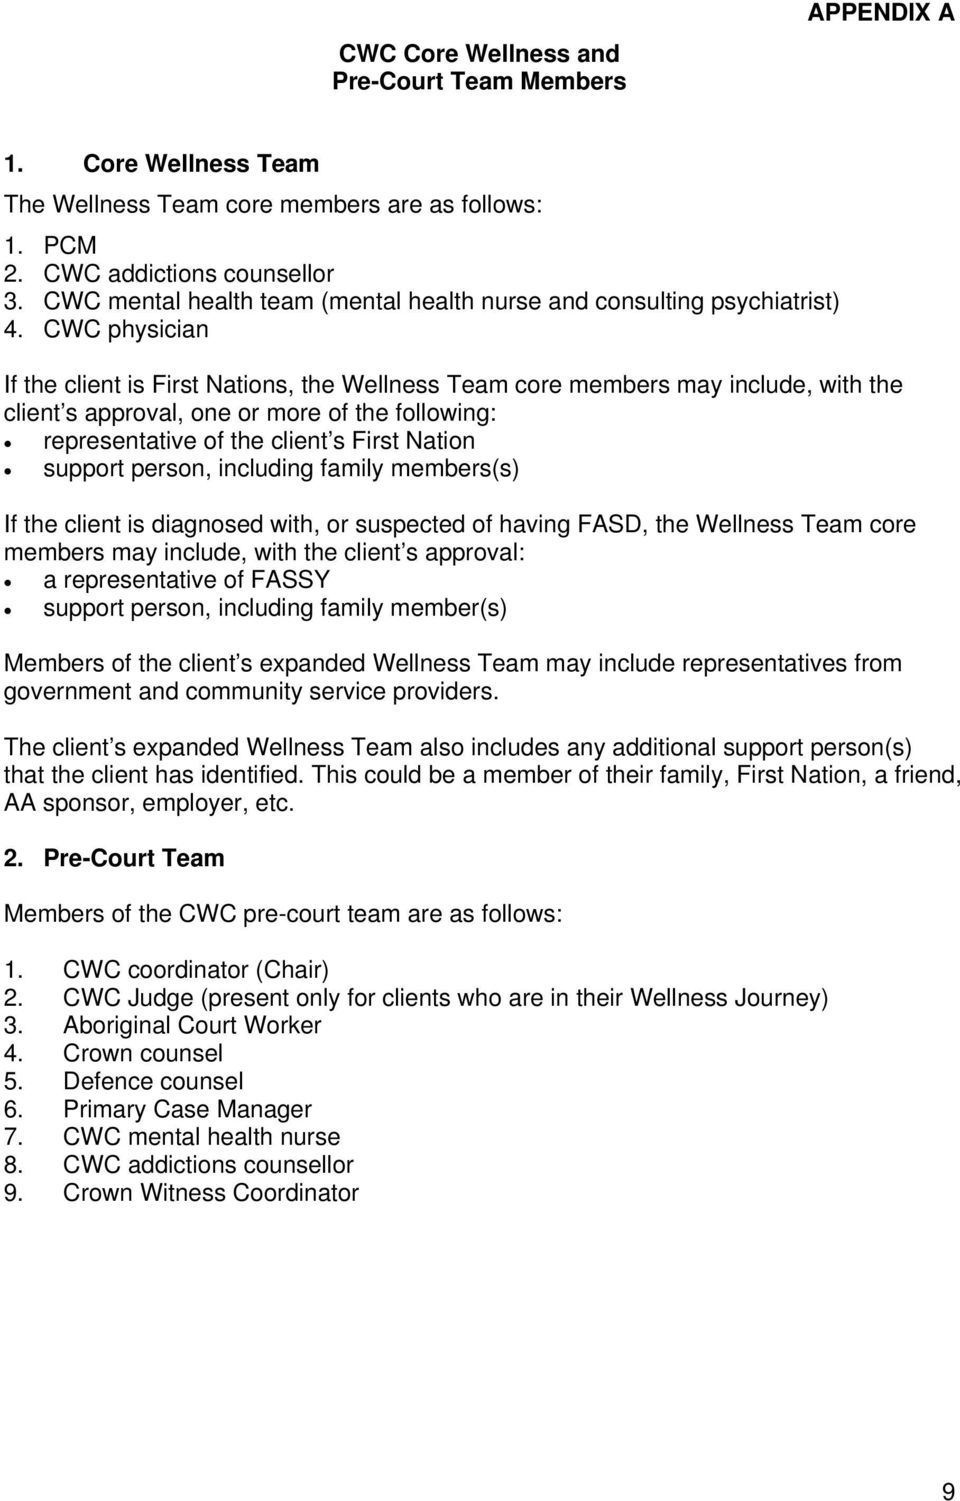 CWC physician If the client is First Nations, the Wellness Team core members may include, with the client s approval, one or more of the following: representative of the client s First Nation support